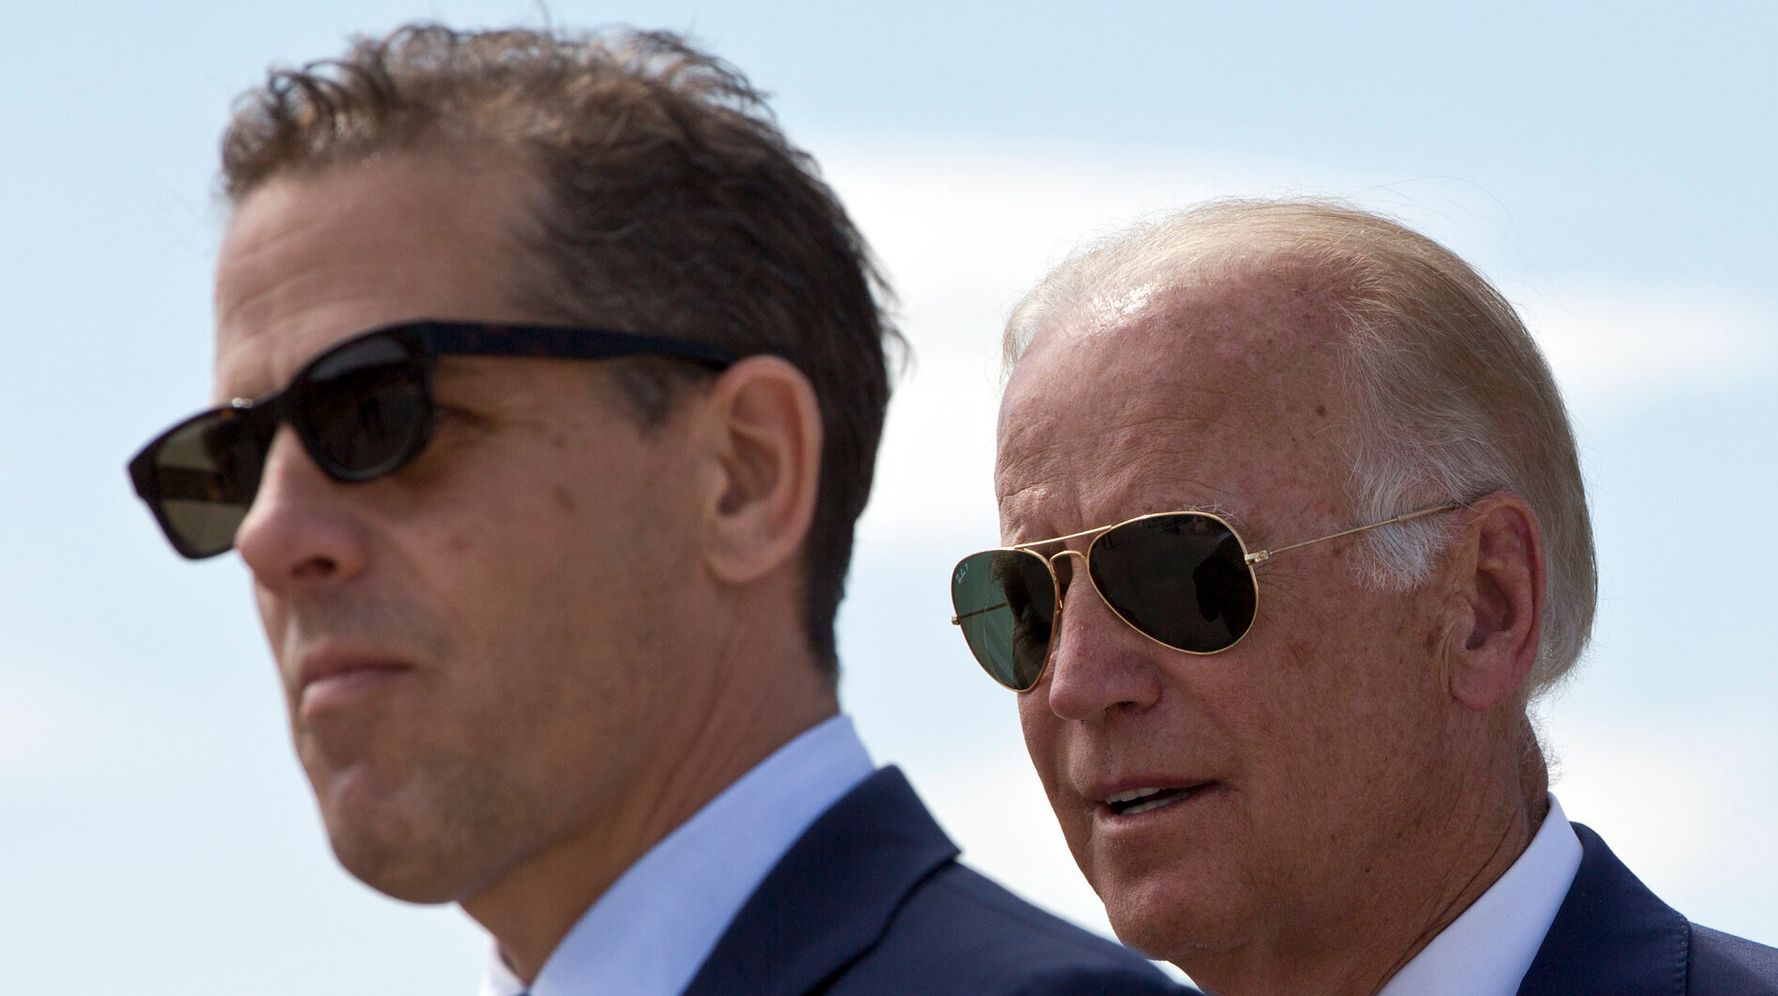 Westlake Legal Group 5da32fdc20000058075006c4 Hunter Biden To Resign From Board Of Chinese-Backed Firm